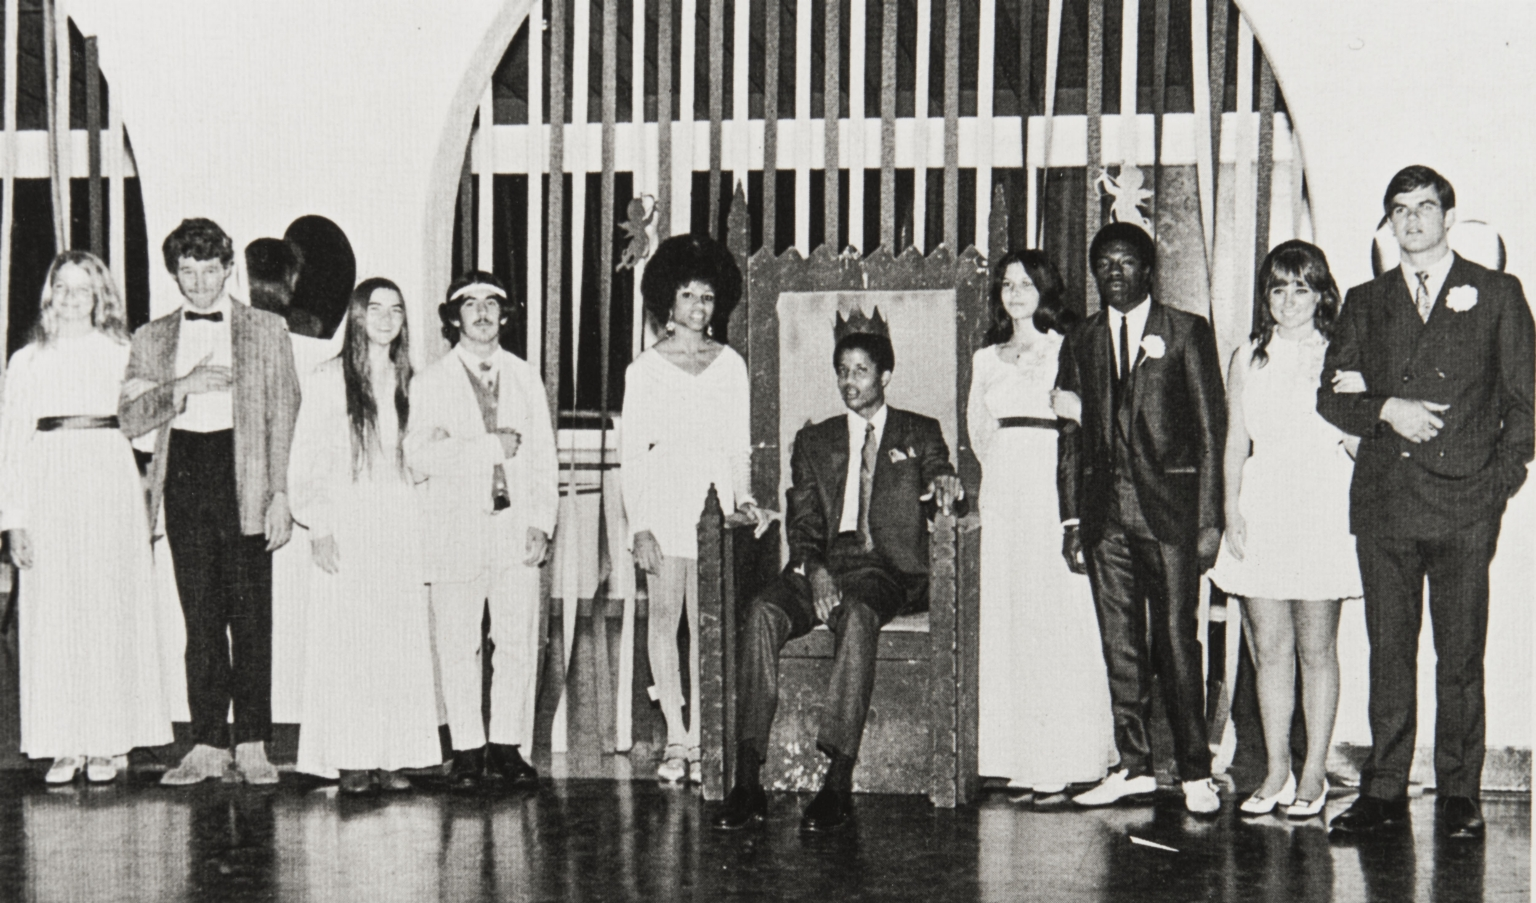 """Keith Wilkes, King of Hearts : l. to r.: Maren Thompson, Tim Bottoms, Janice Murphy, Jeremy Kramer, Carlita Eubanks, Keith Wilkes, Jeanne Mitchell, Earl Pointer, Debbie Ford and Russ Carter. Keith (later Jamaal) Wilkes was crowned """"king"""" and reigned over the prom. His hobbies were reading, music, and writing, and he planned to major in history or economics in college. His father Reverend L. Leander Wilkes came from Ventura to be pastor of the Second Baptist Church, bringing the family in 1969."""